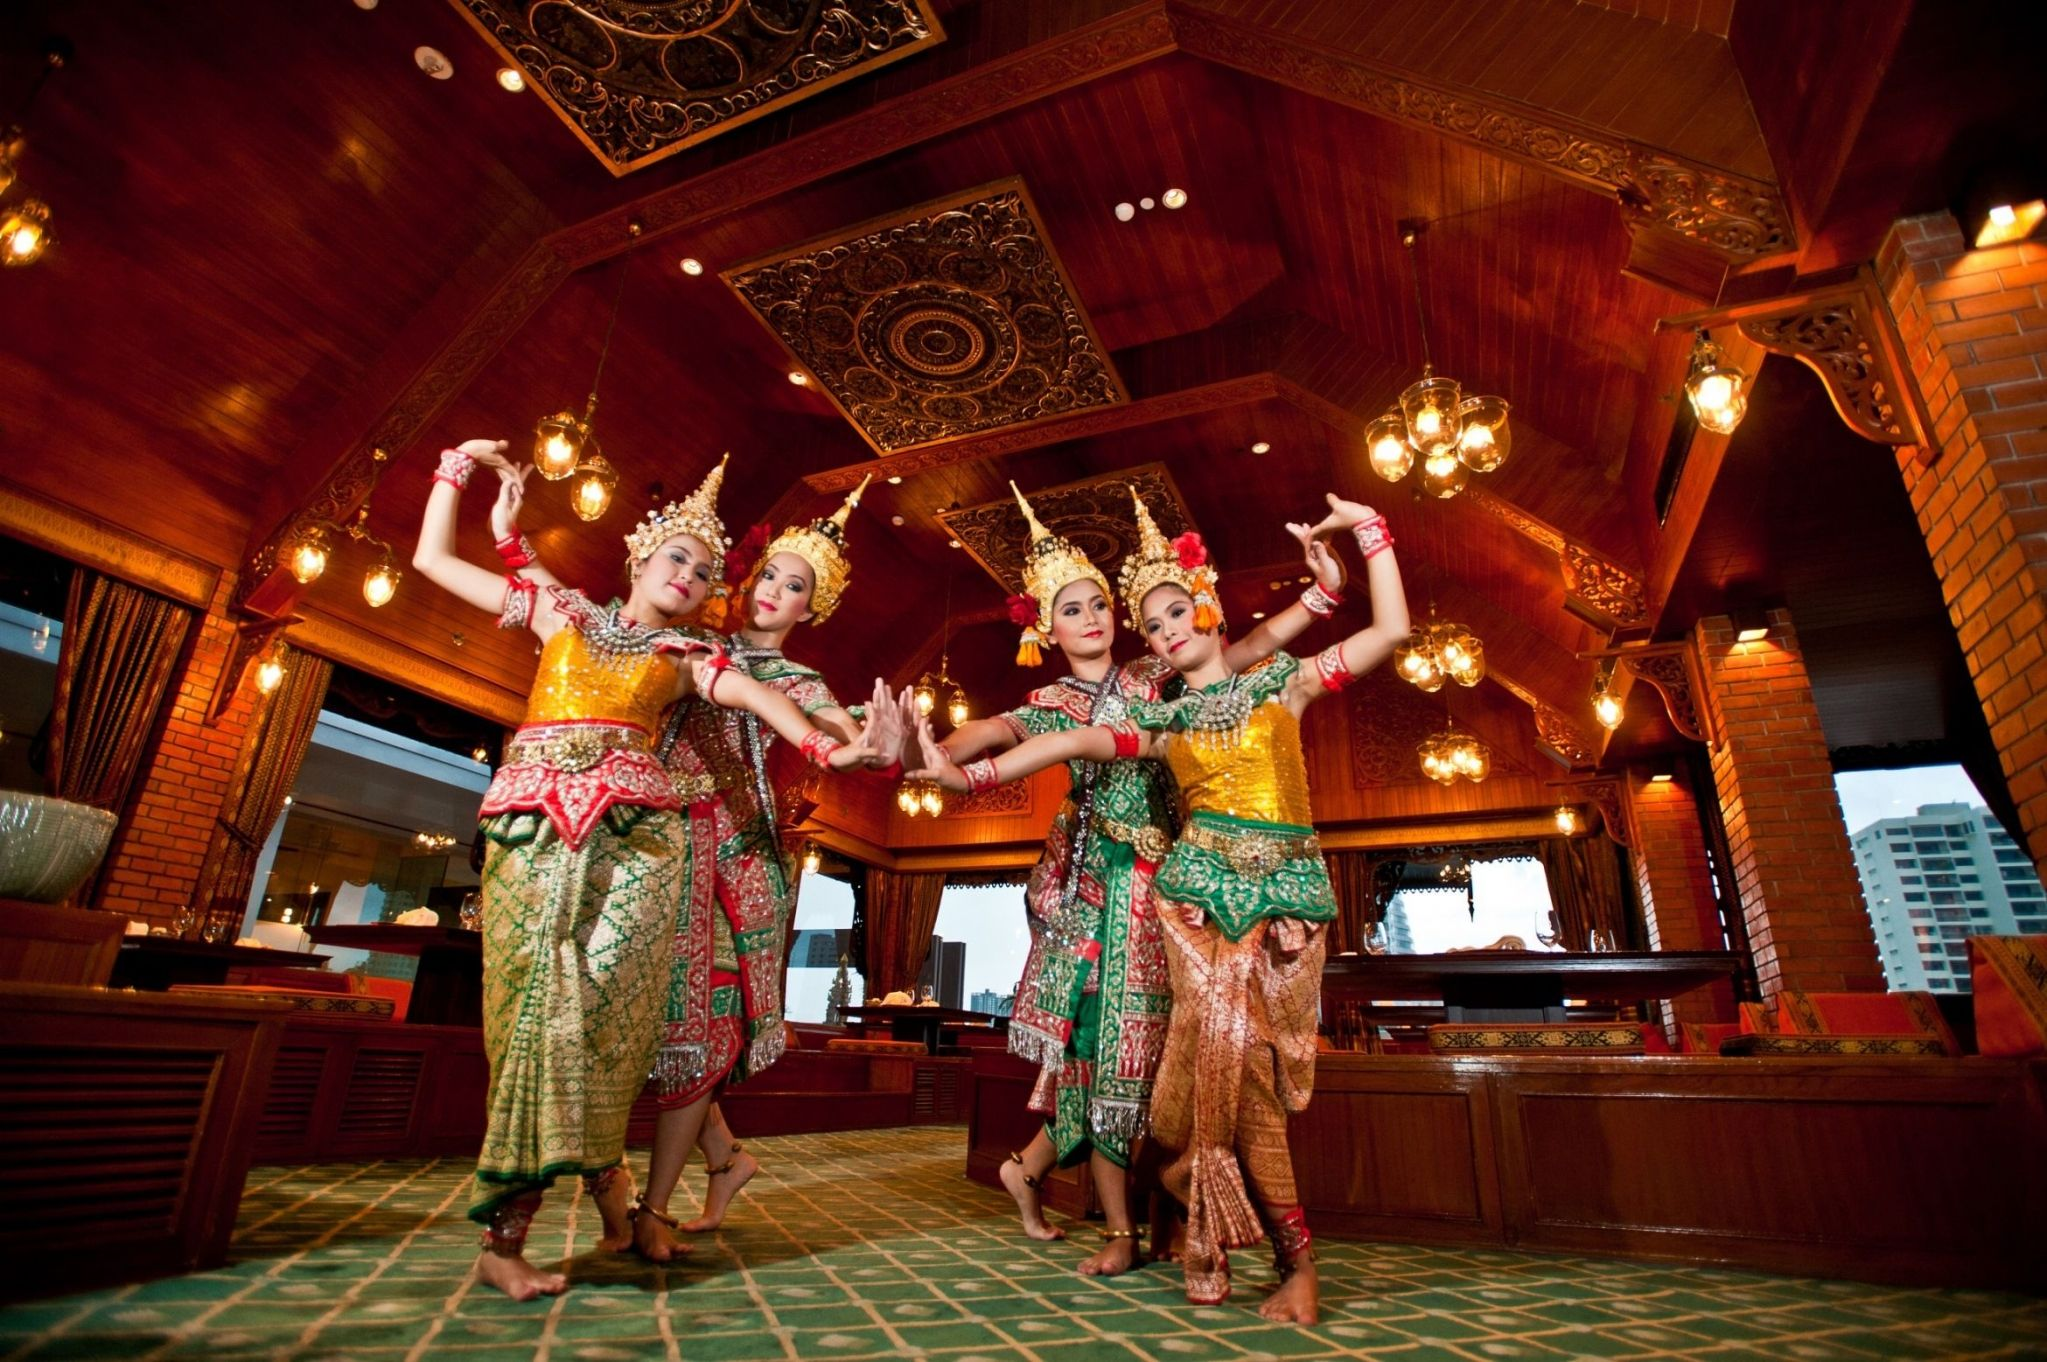 Thara Thong Brings the Magic of Thai Culture Right Up to Your Table - Royal Orchid Sheraton Hotel & Towers